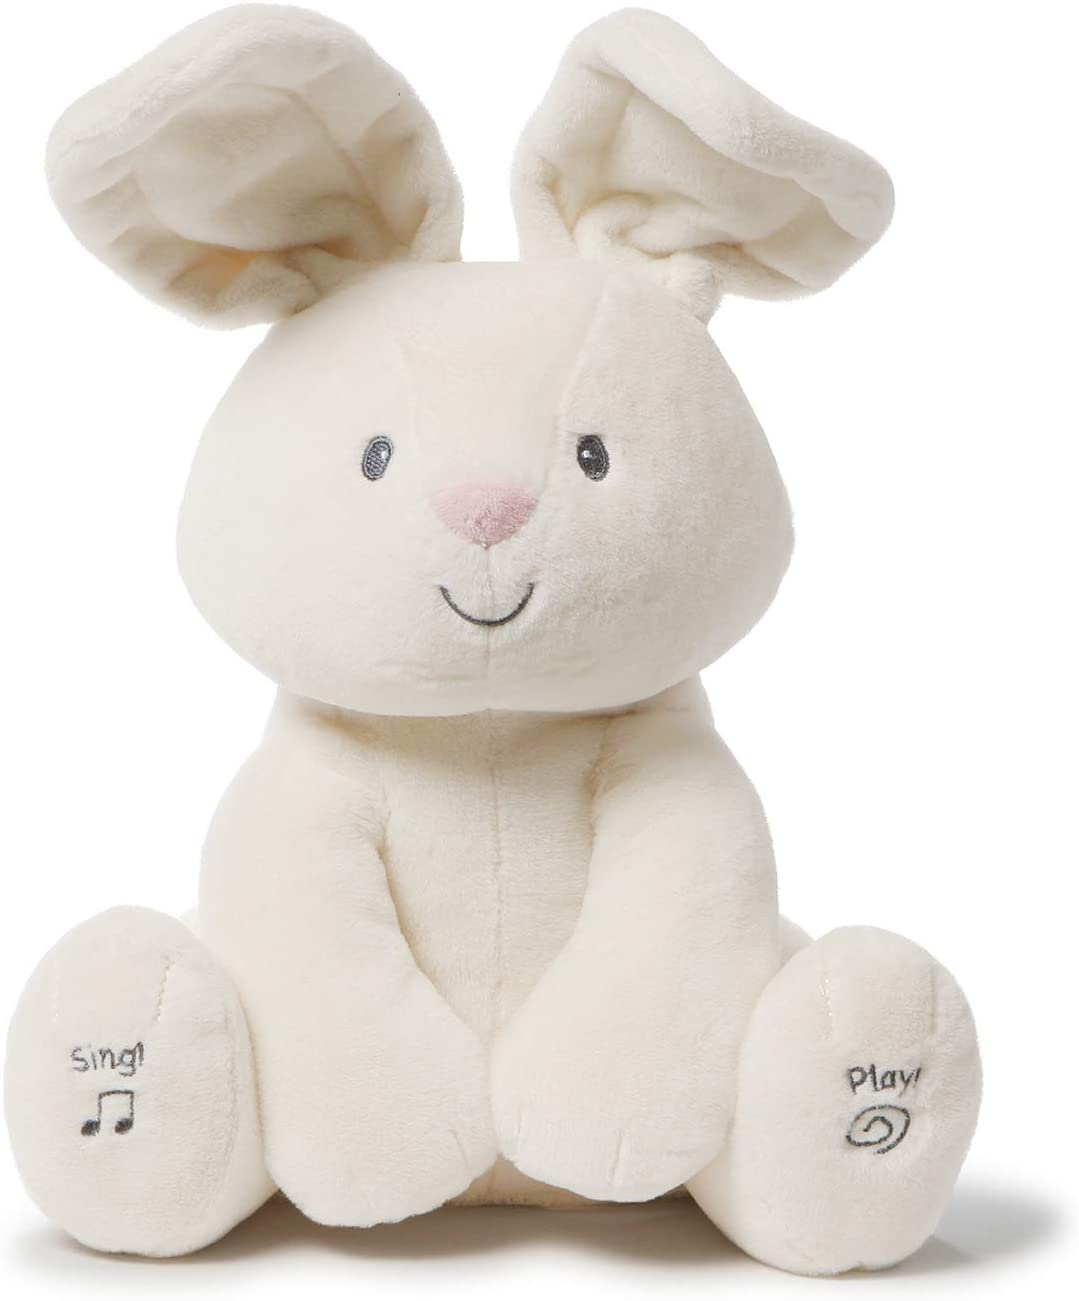 A sweet and smiling animated bunny best for toddlers.